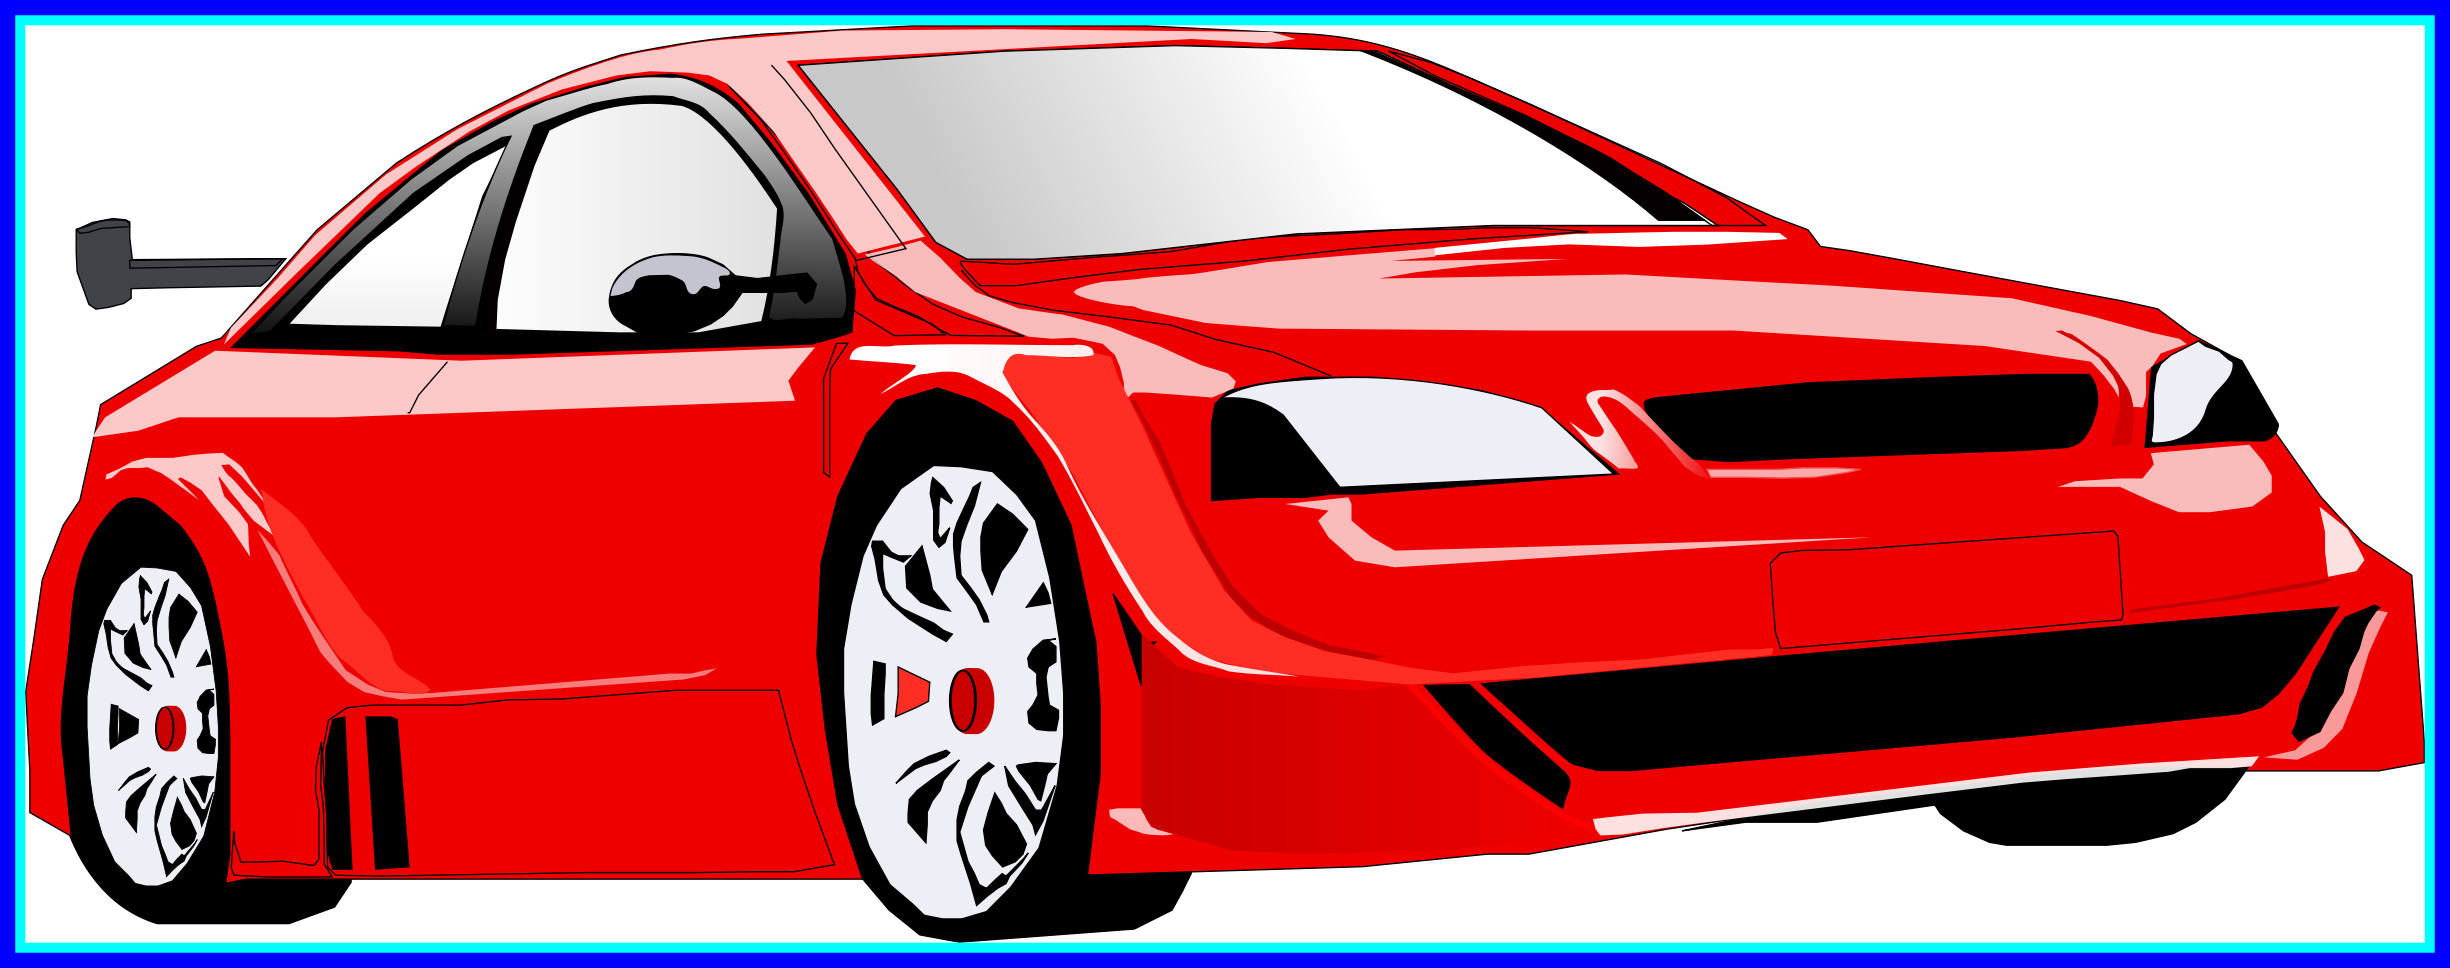 Car clipart background image library download Unbelievable Sports Car Clipart Background Art And Image For Clip ... image library download